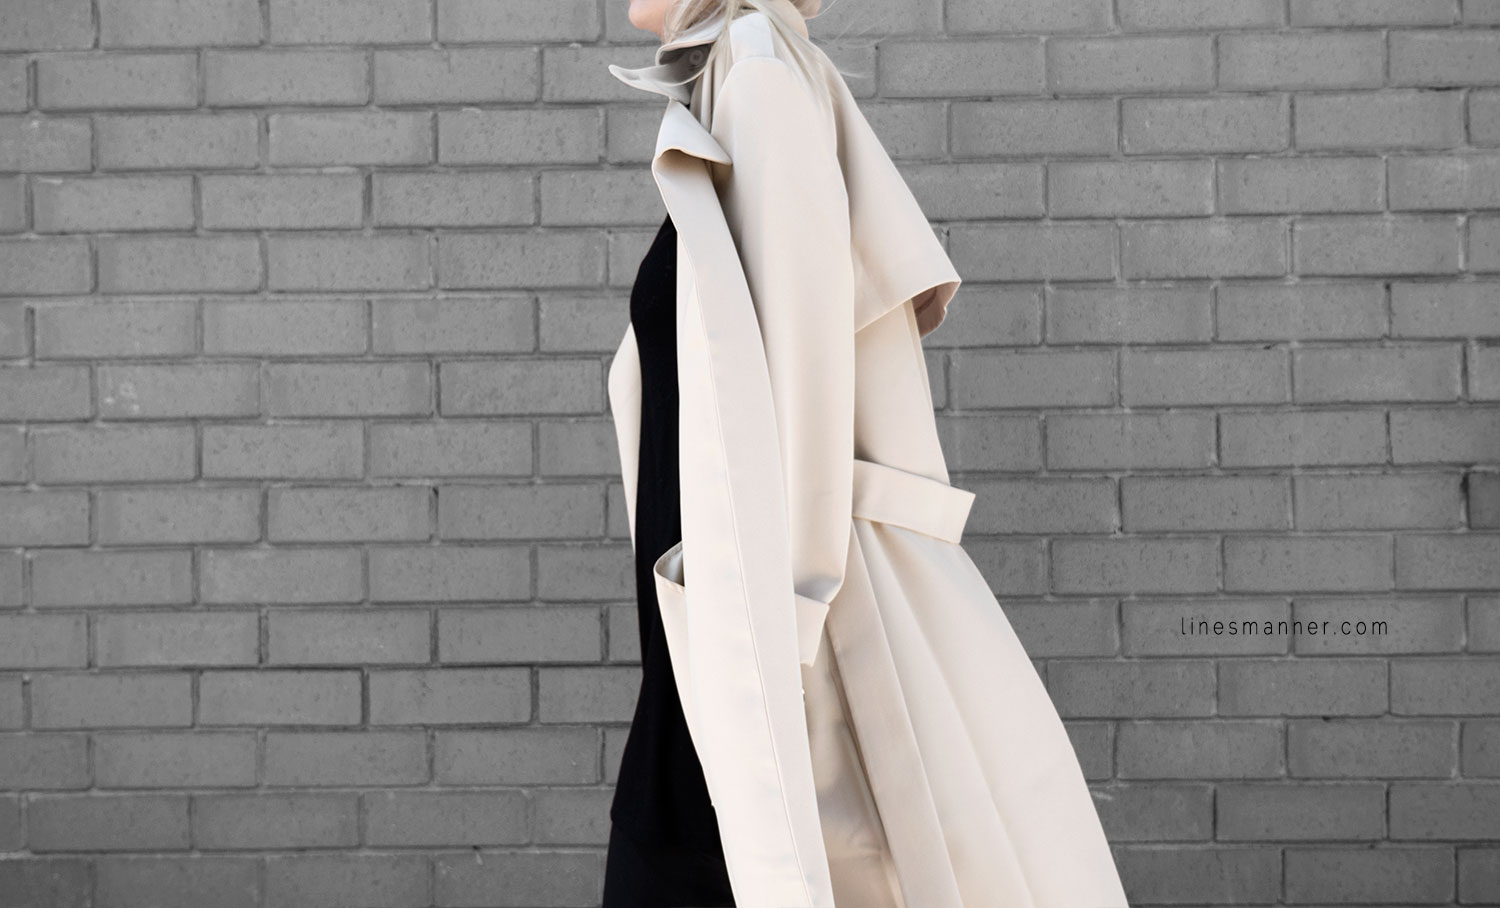 Lines-Manner-Trench-Minimal-Outfits-Fashion-Essentials-Classics-Timeless-Versatile-Details-Hues-Nonchalance-Elegance-Casual-Effortless-9